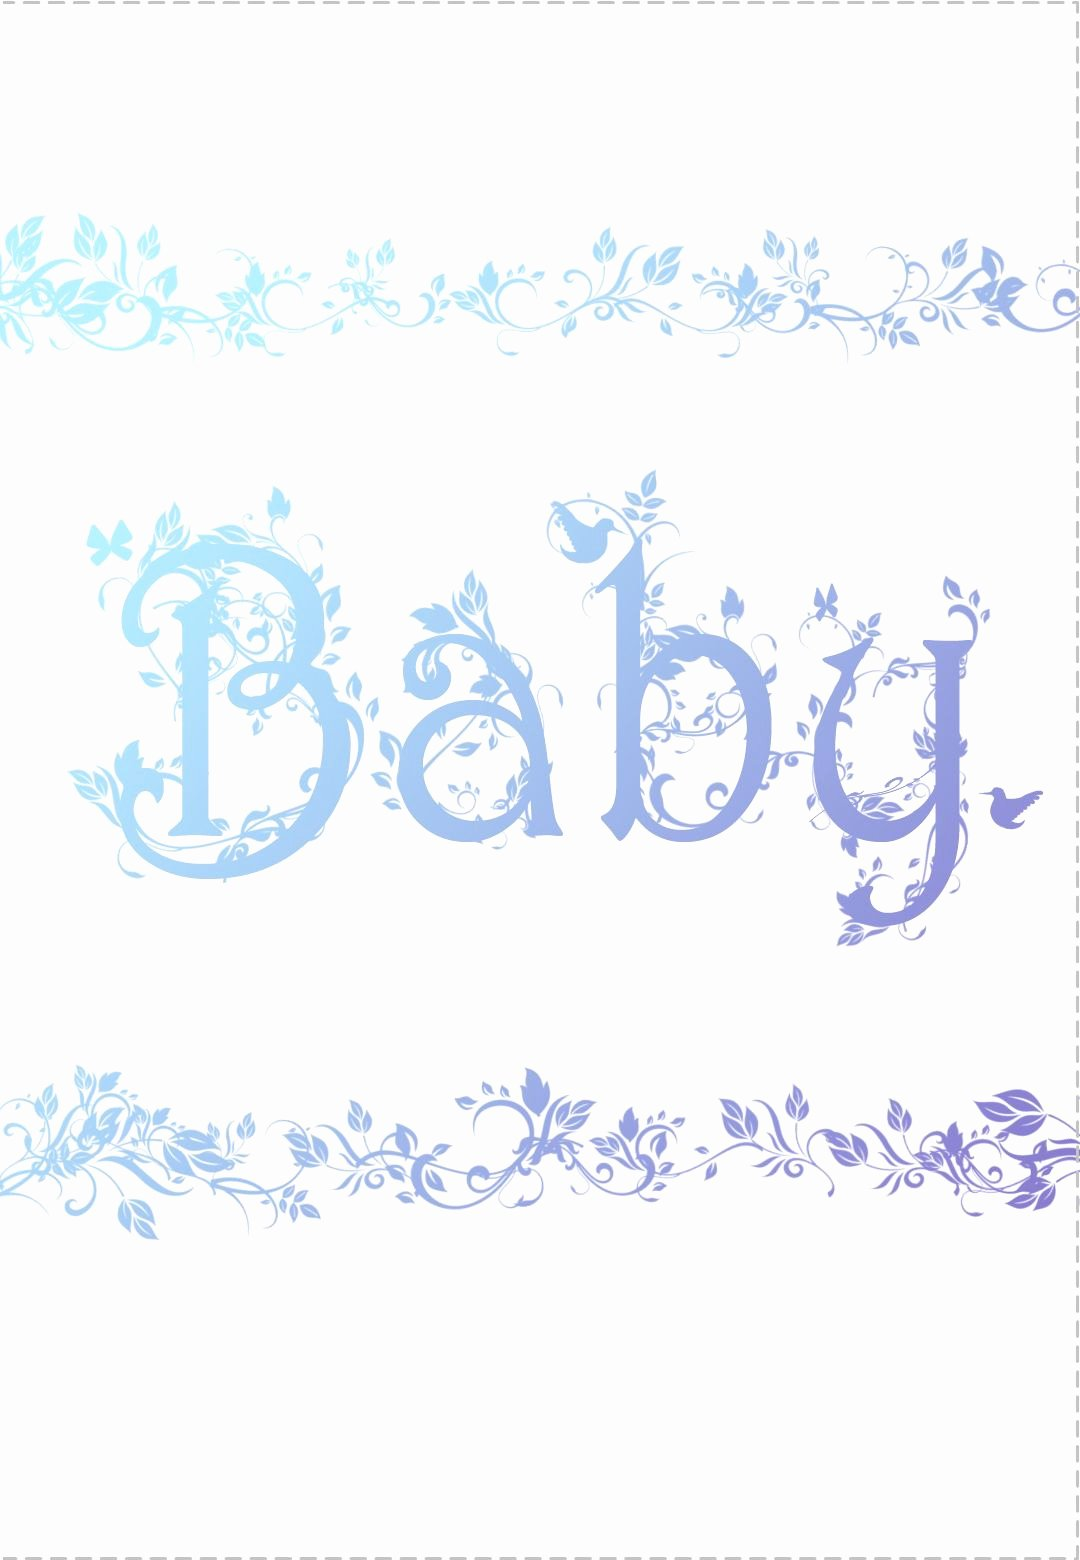 Baby Shower Card to Print Luxury Free Printable Decorated Baby Card Greeting Card